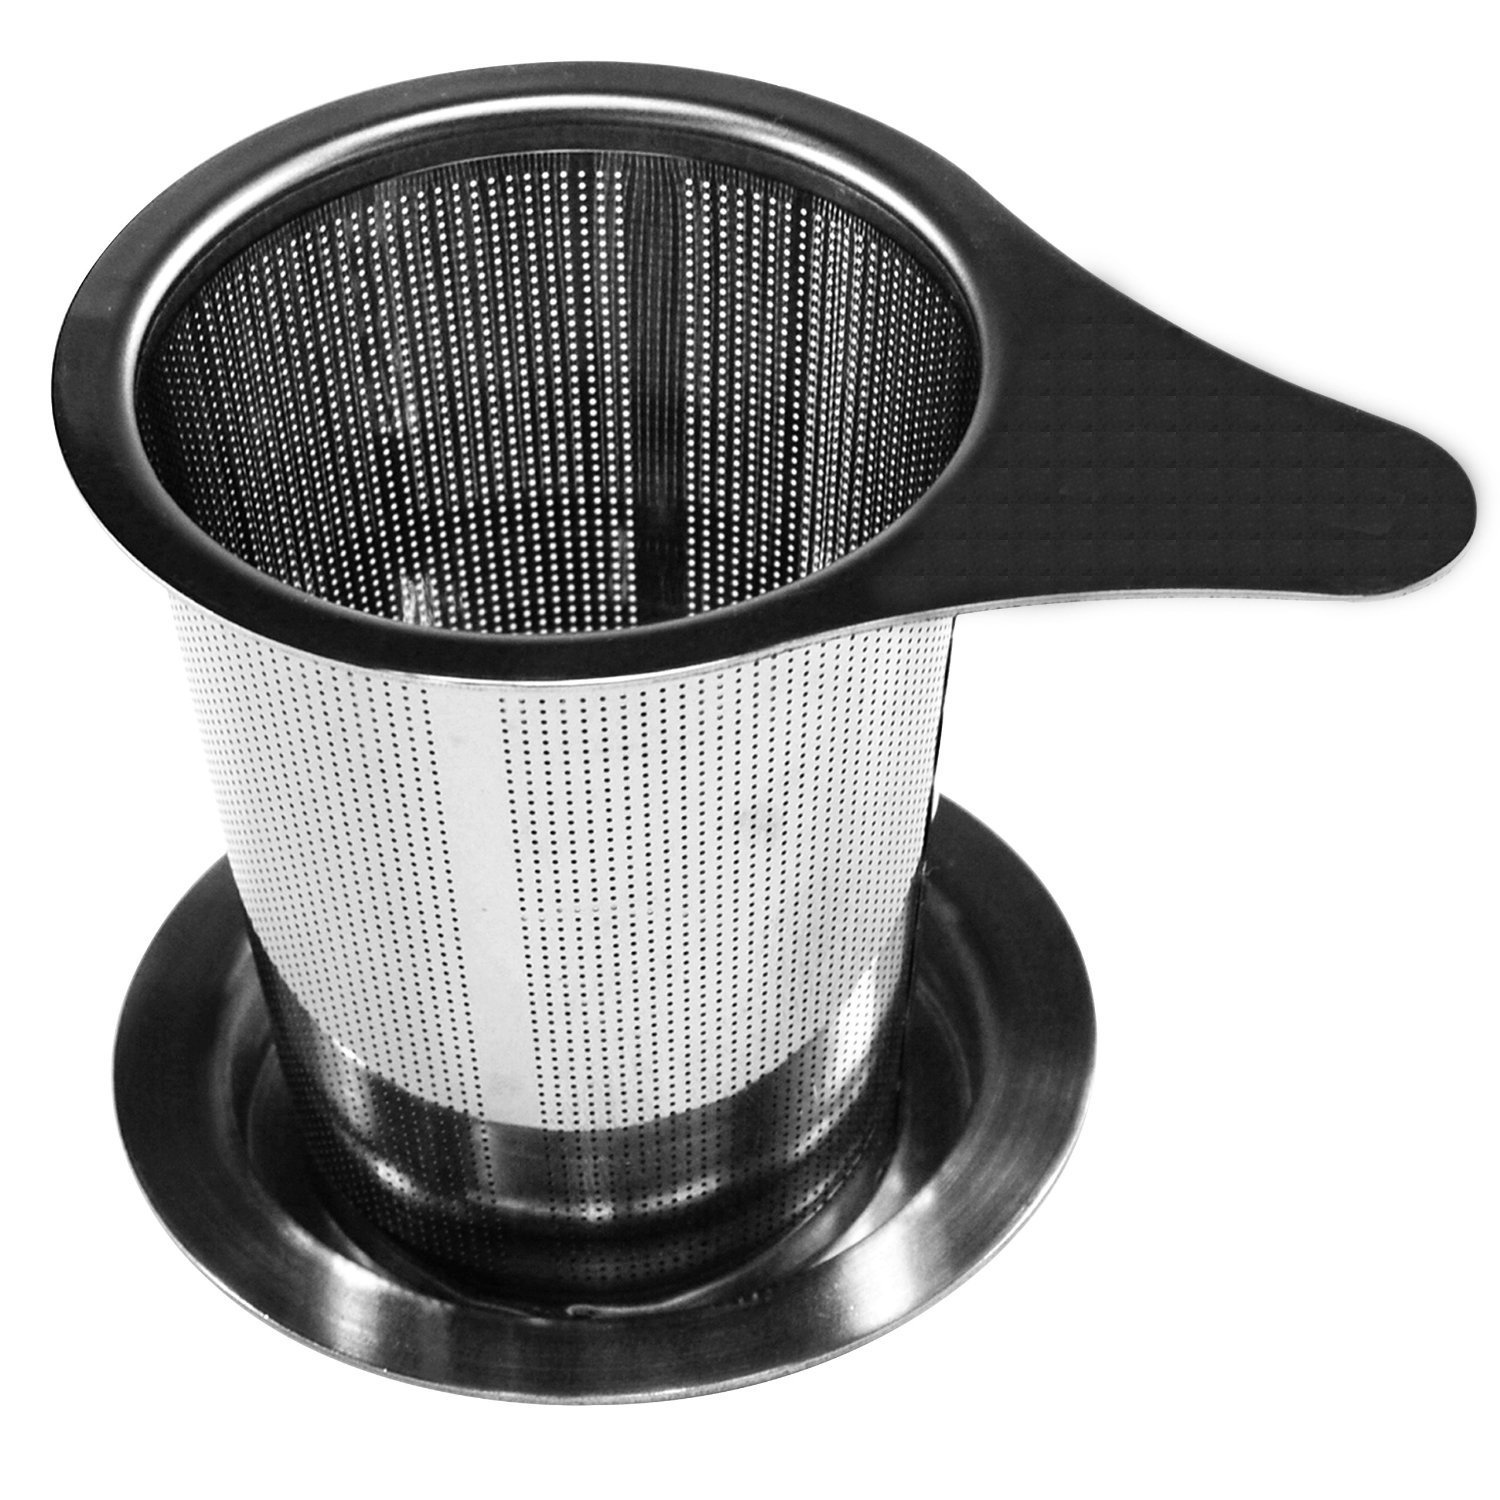 Ilyever Ultra Large Fine Brew-in-mug Tea Infuser with Lid-Stainless Steel Large Capacity Tea Strainer Steeper-Wide Rimmed with Handle for Loose Leaf Grain Tea Cups, Mugs, and Pots